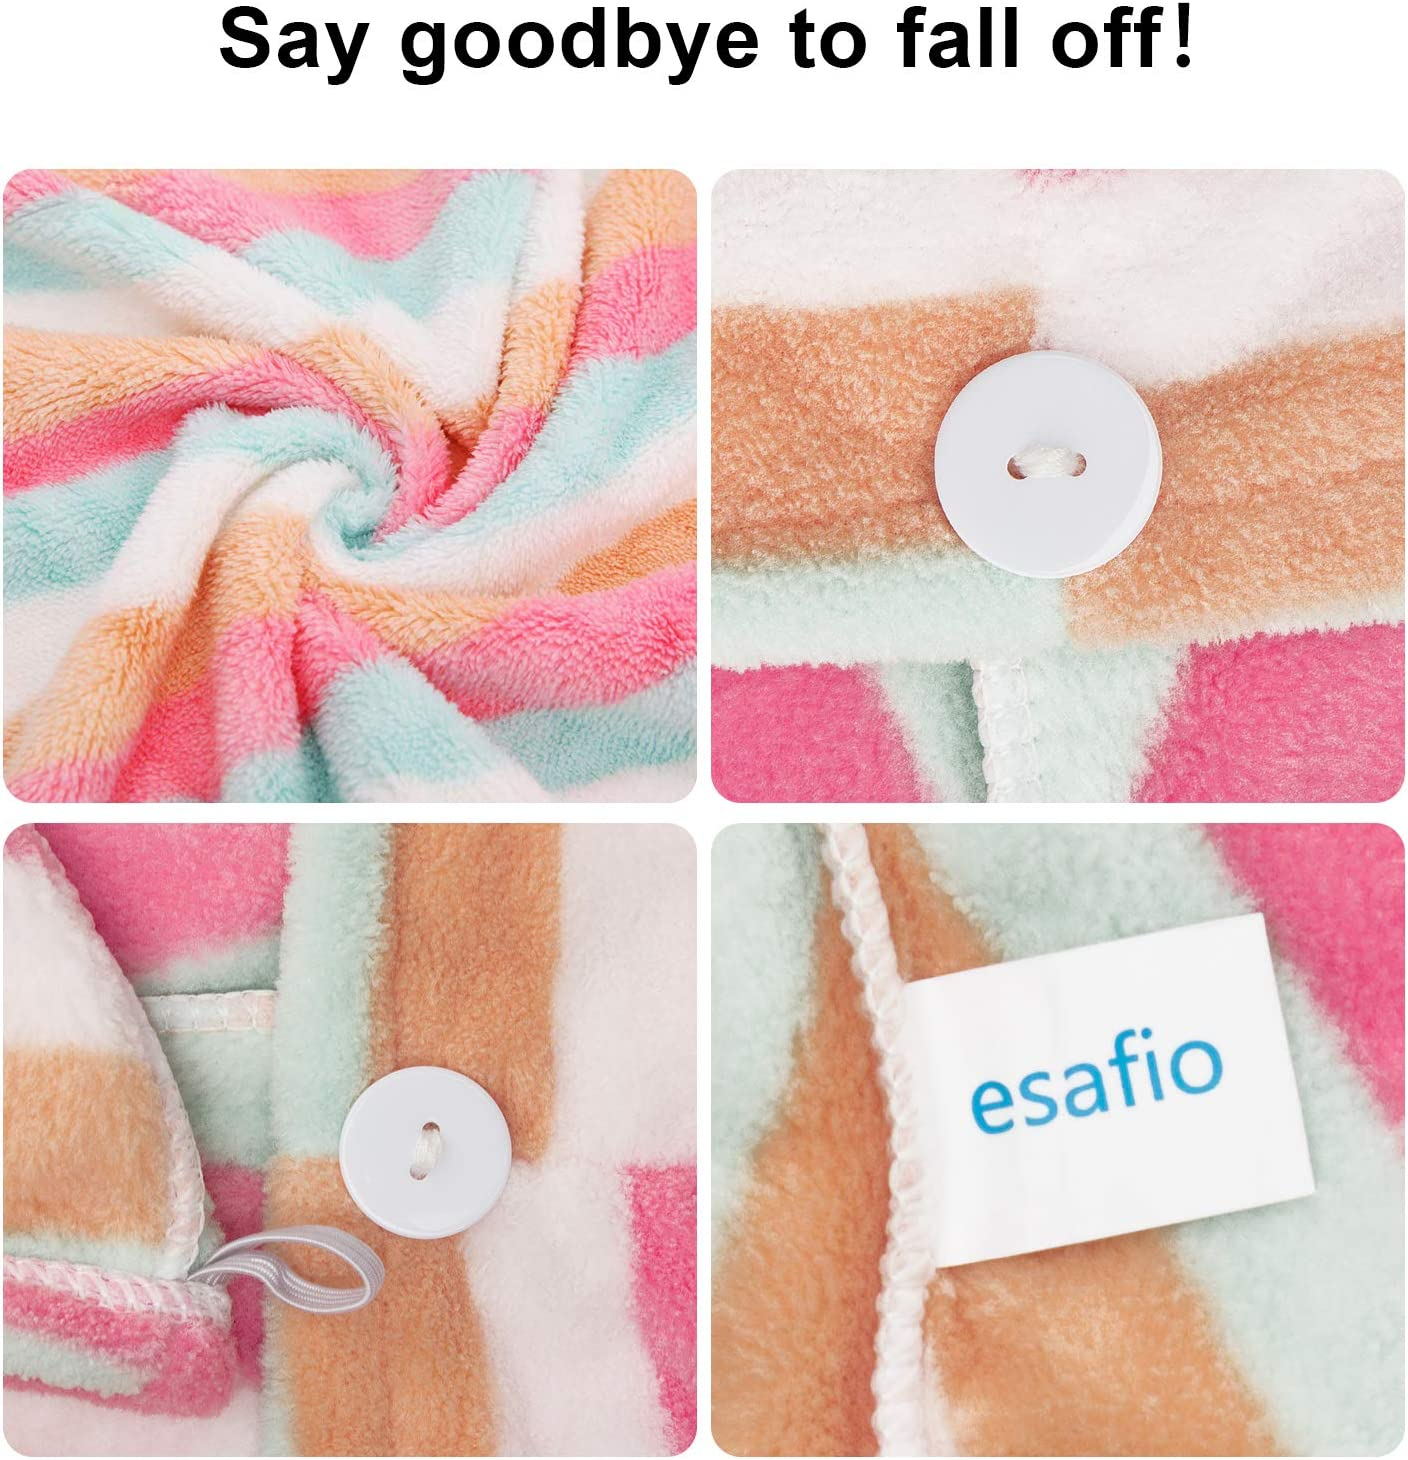 Esafio 2 Pack Soft Microfiber Hair Turban Wrap Super Absorbent Quick Dry hair towels with Buttons Dark Purple+Pink Color for Women Girl /… Unique and stylish design